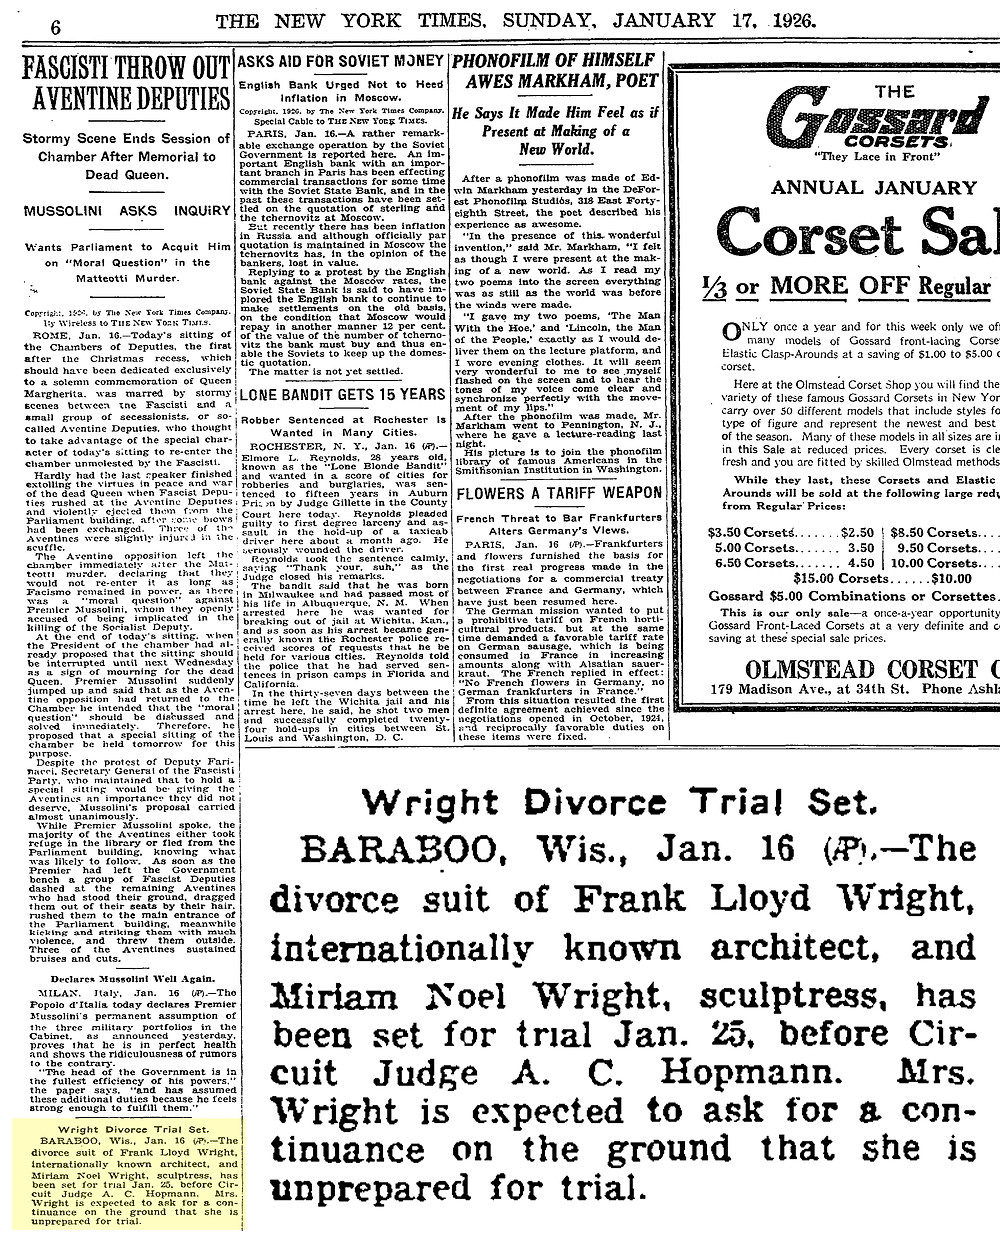 The New York Times (July 17, 1926)